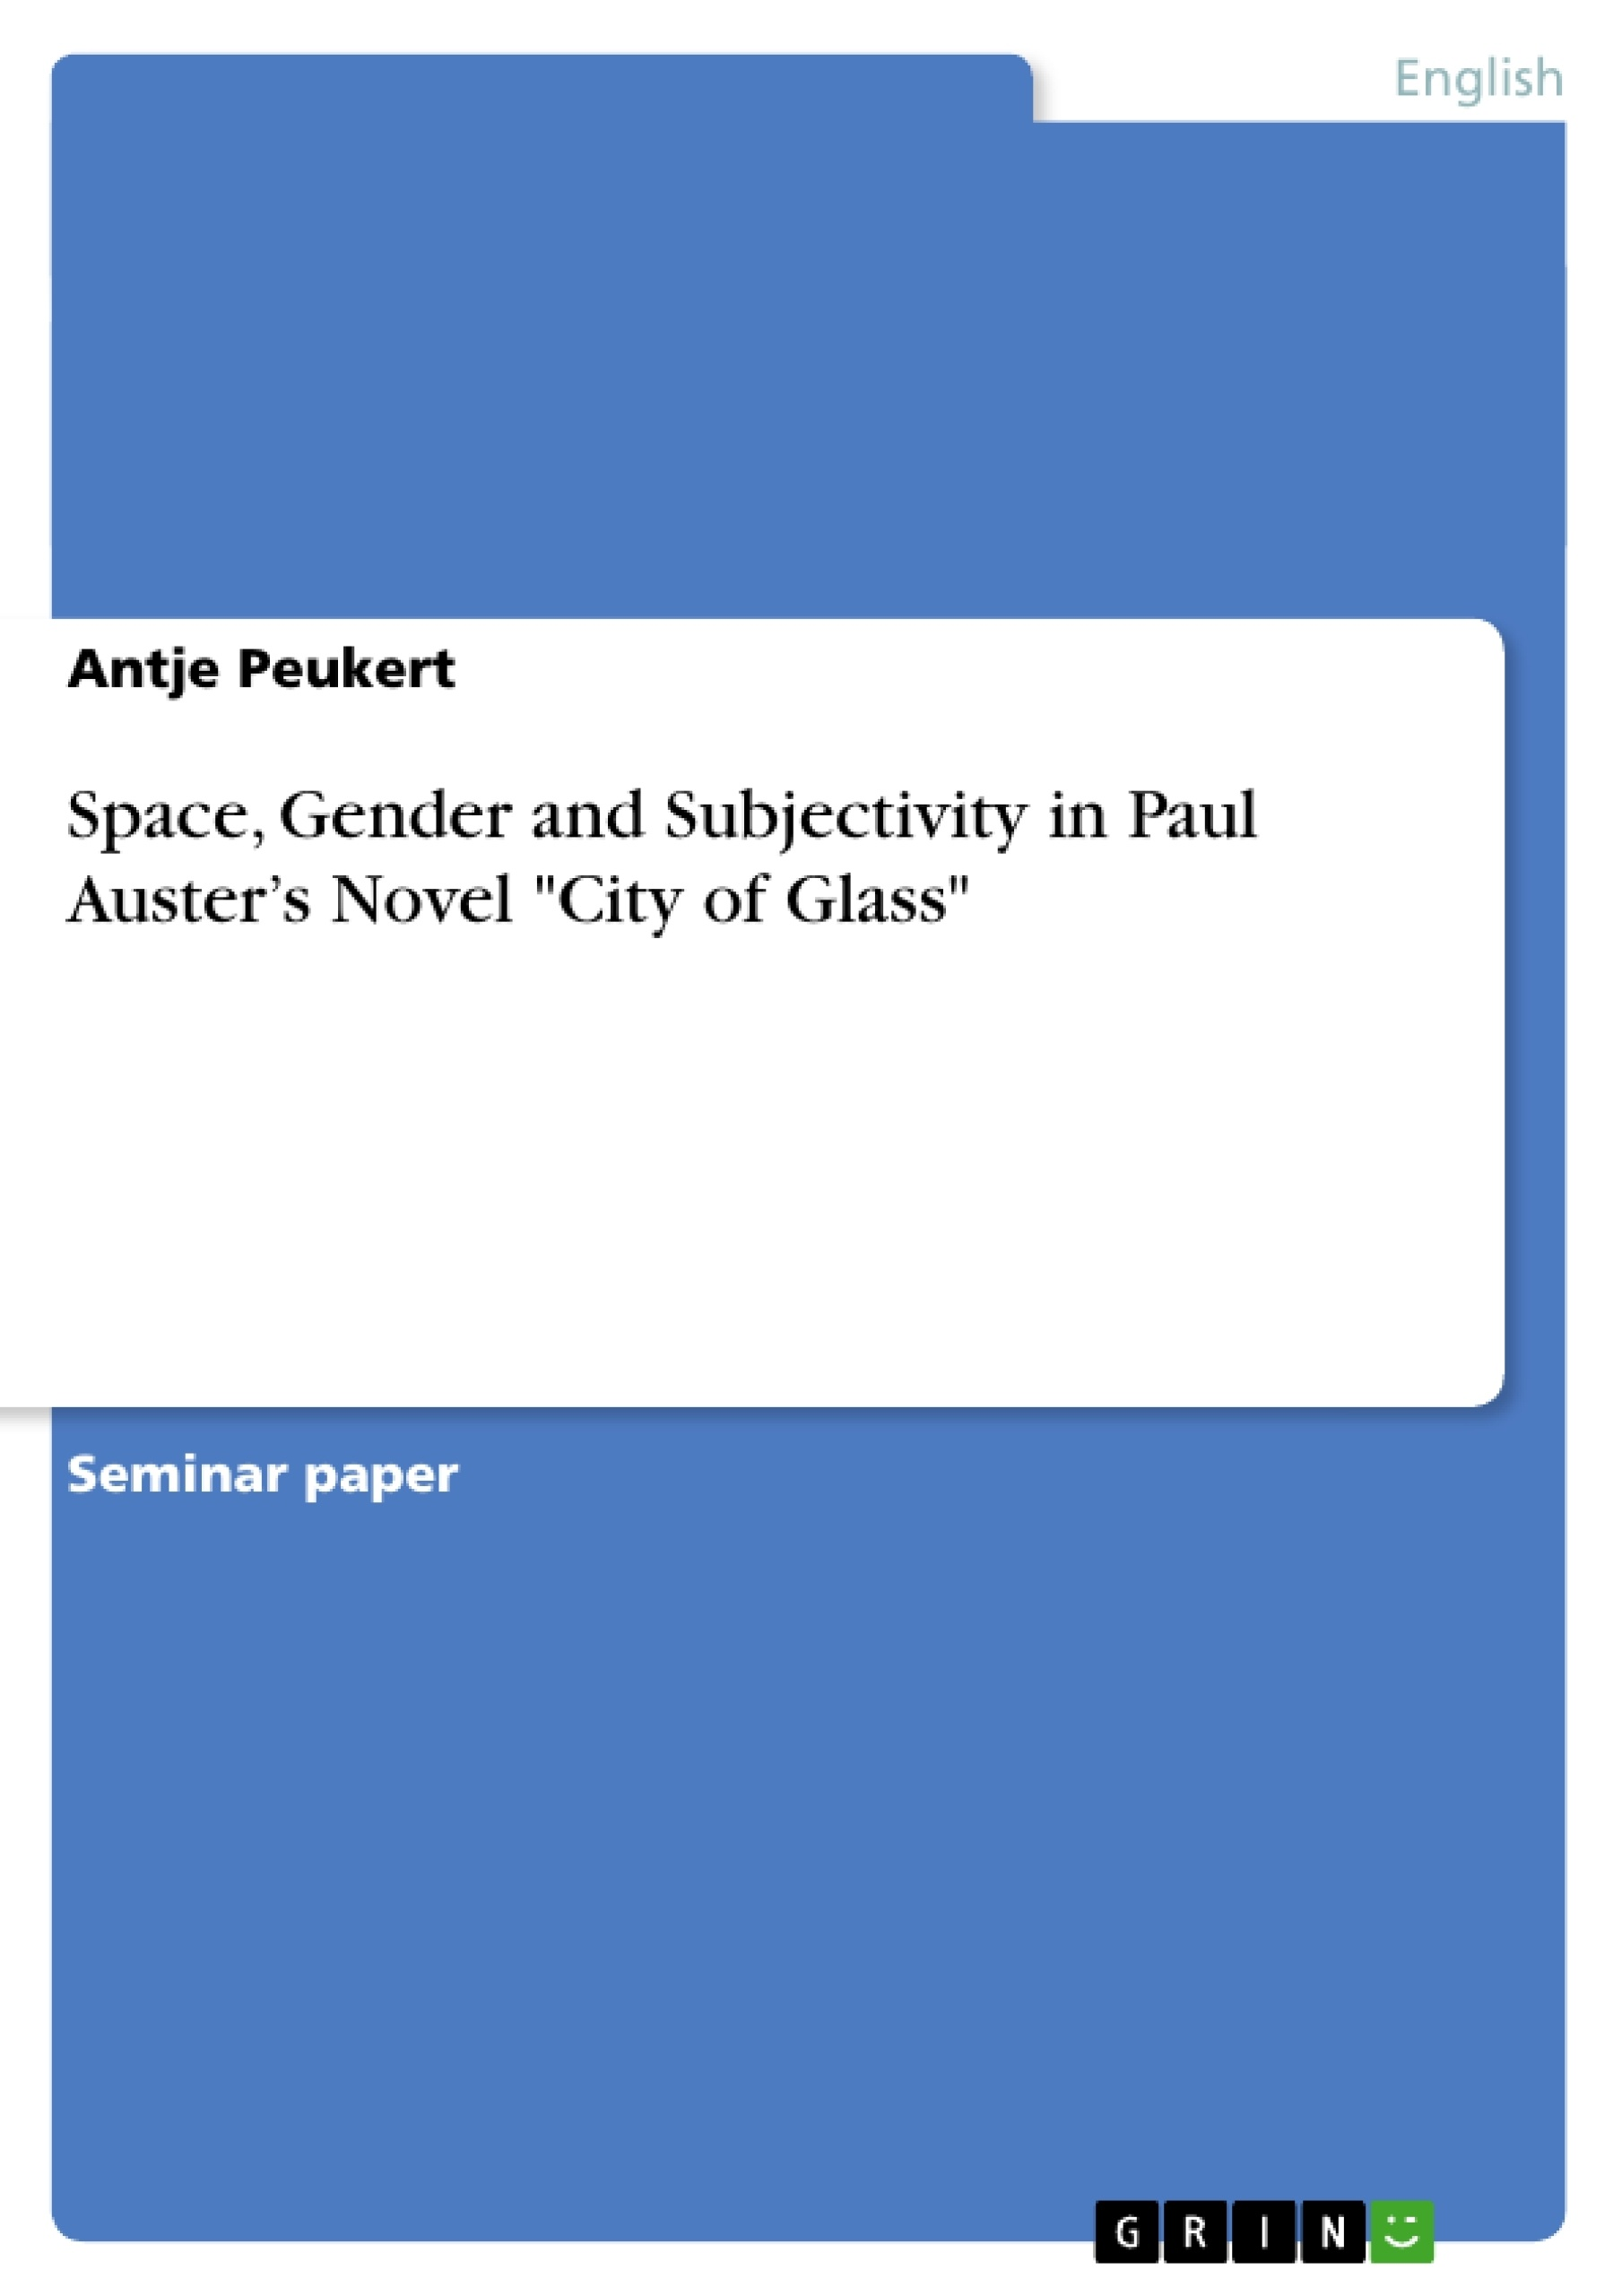 space gender and subjectivity in paul auster s novel city of space gender and subjectivity in paul auster s novel city of glass publish your master s thesis bachelor s thesis essay or term paper